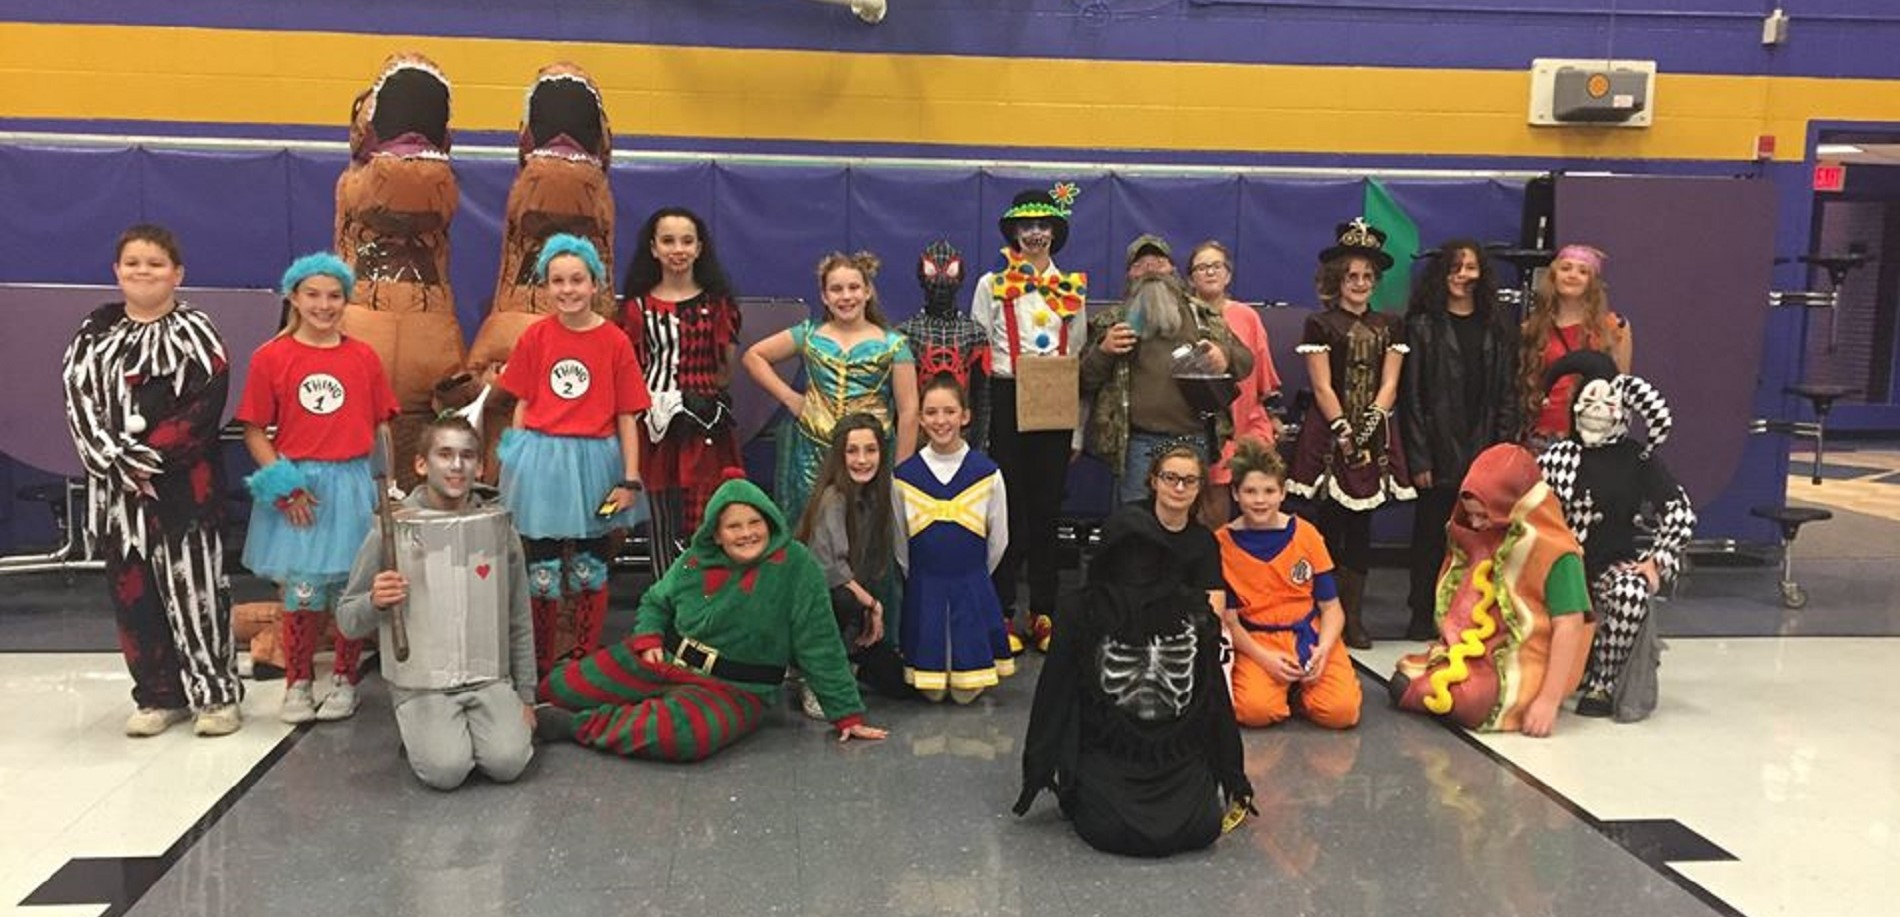 Students Show Off Their Costumes at the WHMS